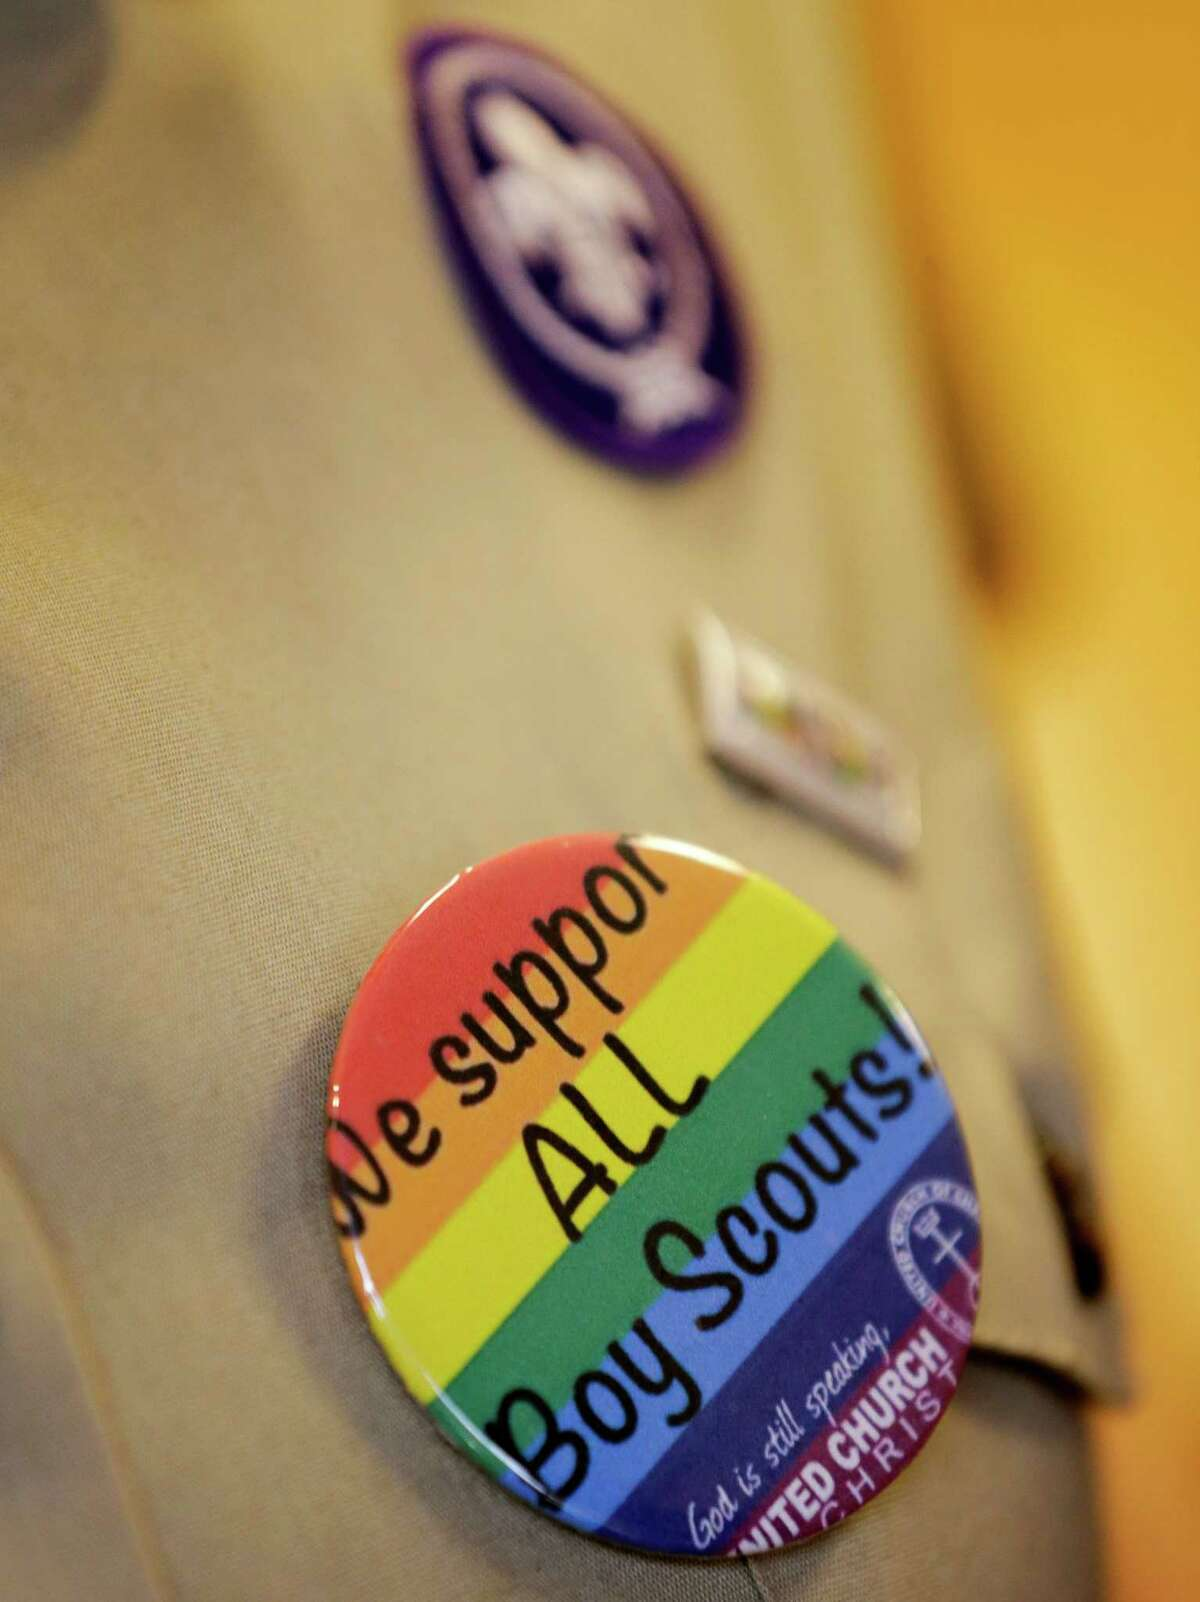 A uniform button calls on the Boy Scouts of America to end its discriminatory practices.